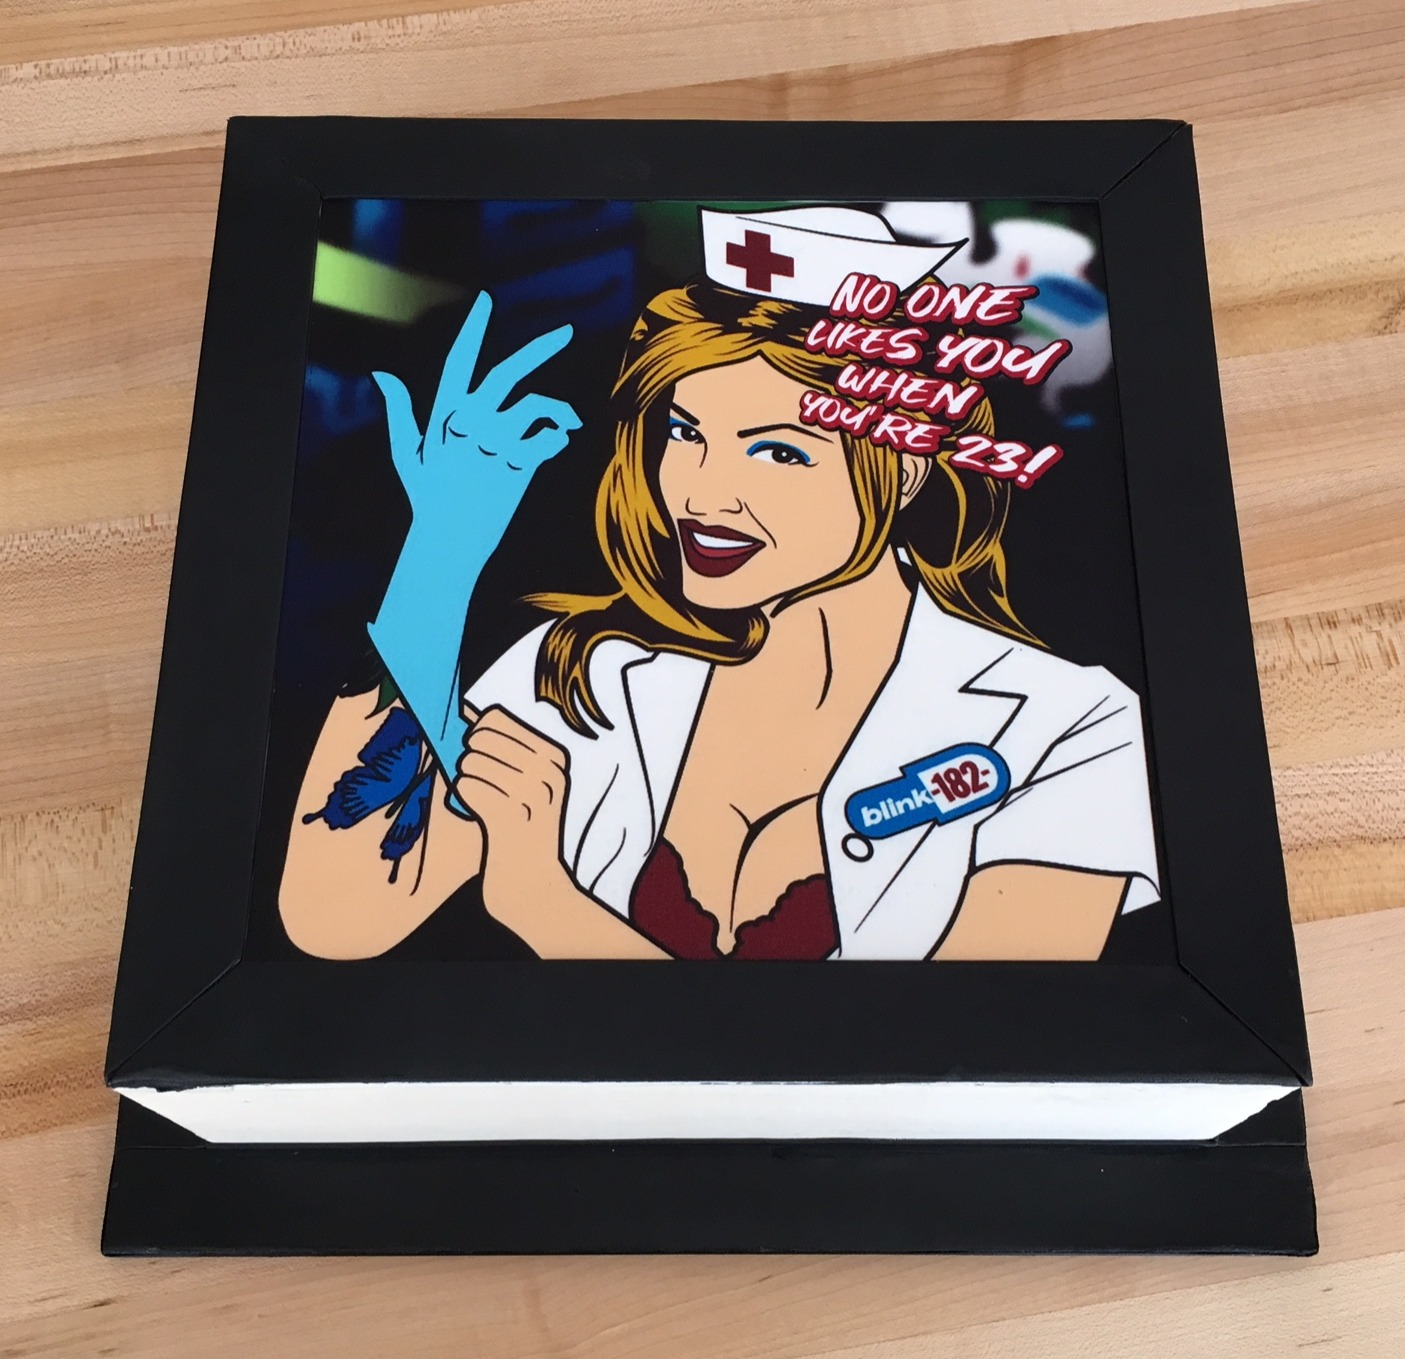 Blink 182 Edible Print Cake